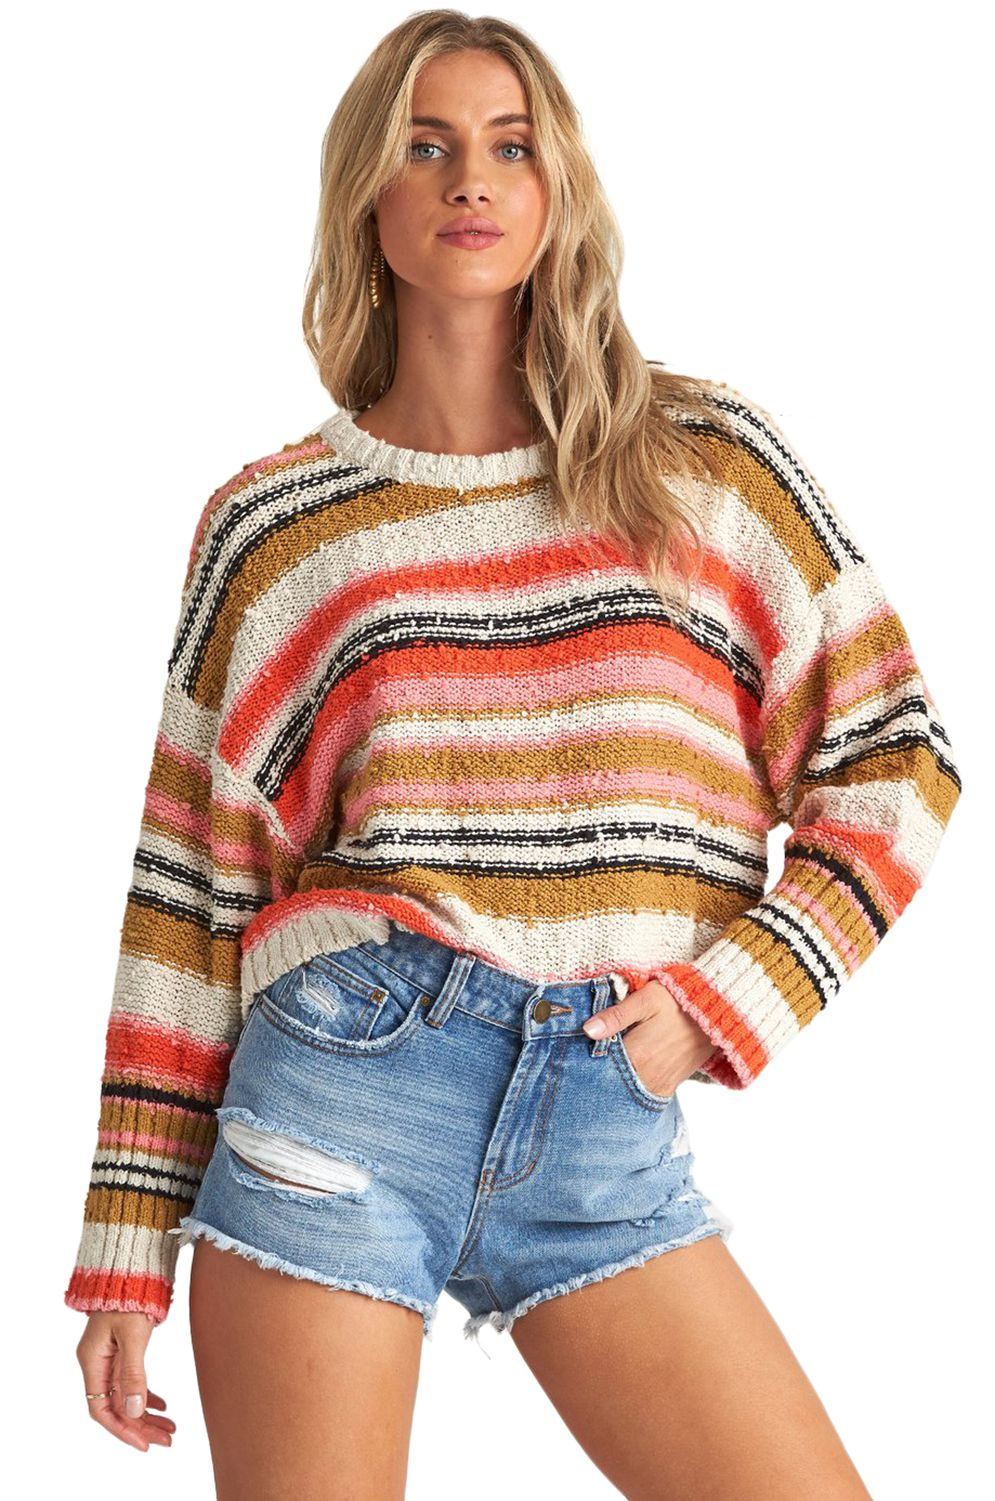 Billabong Sweater EASY GOING BEACH BAZAAR Samba